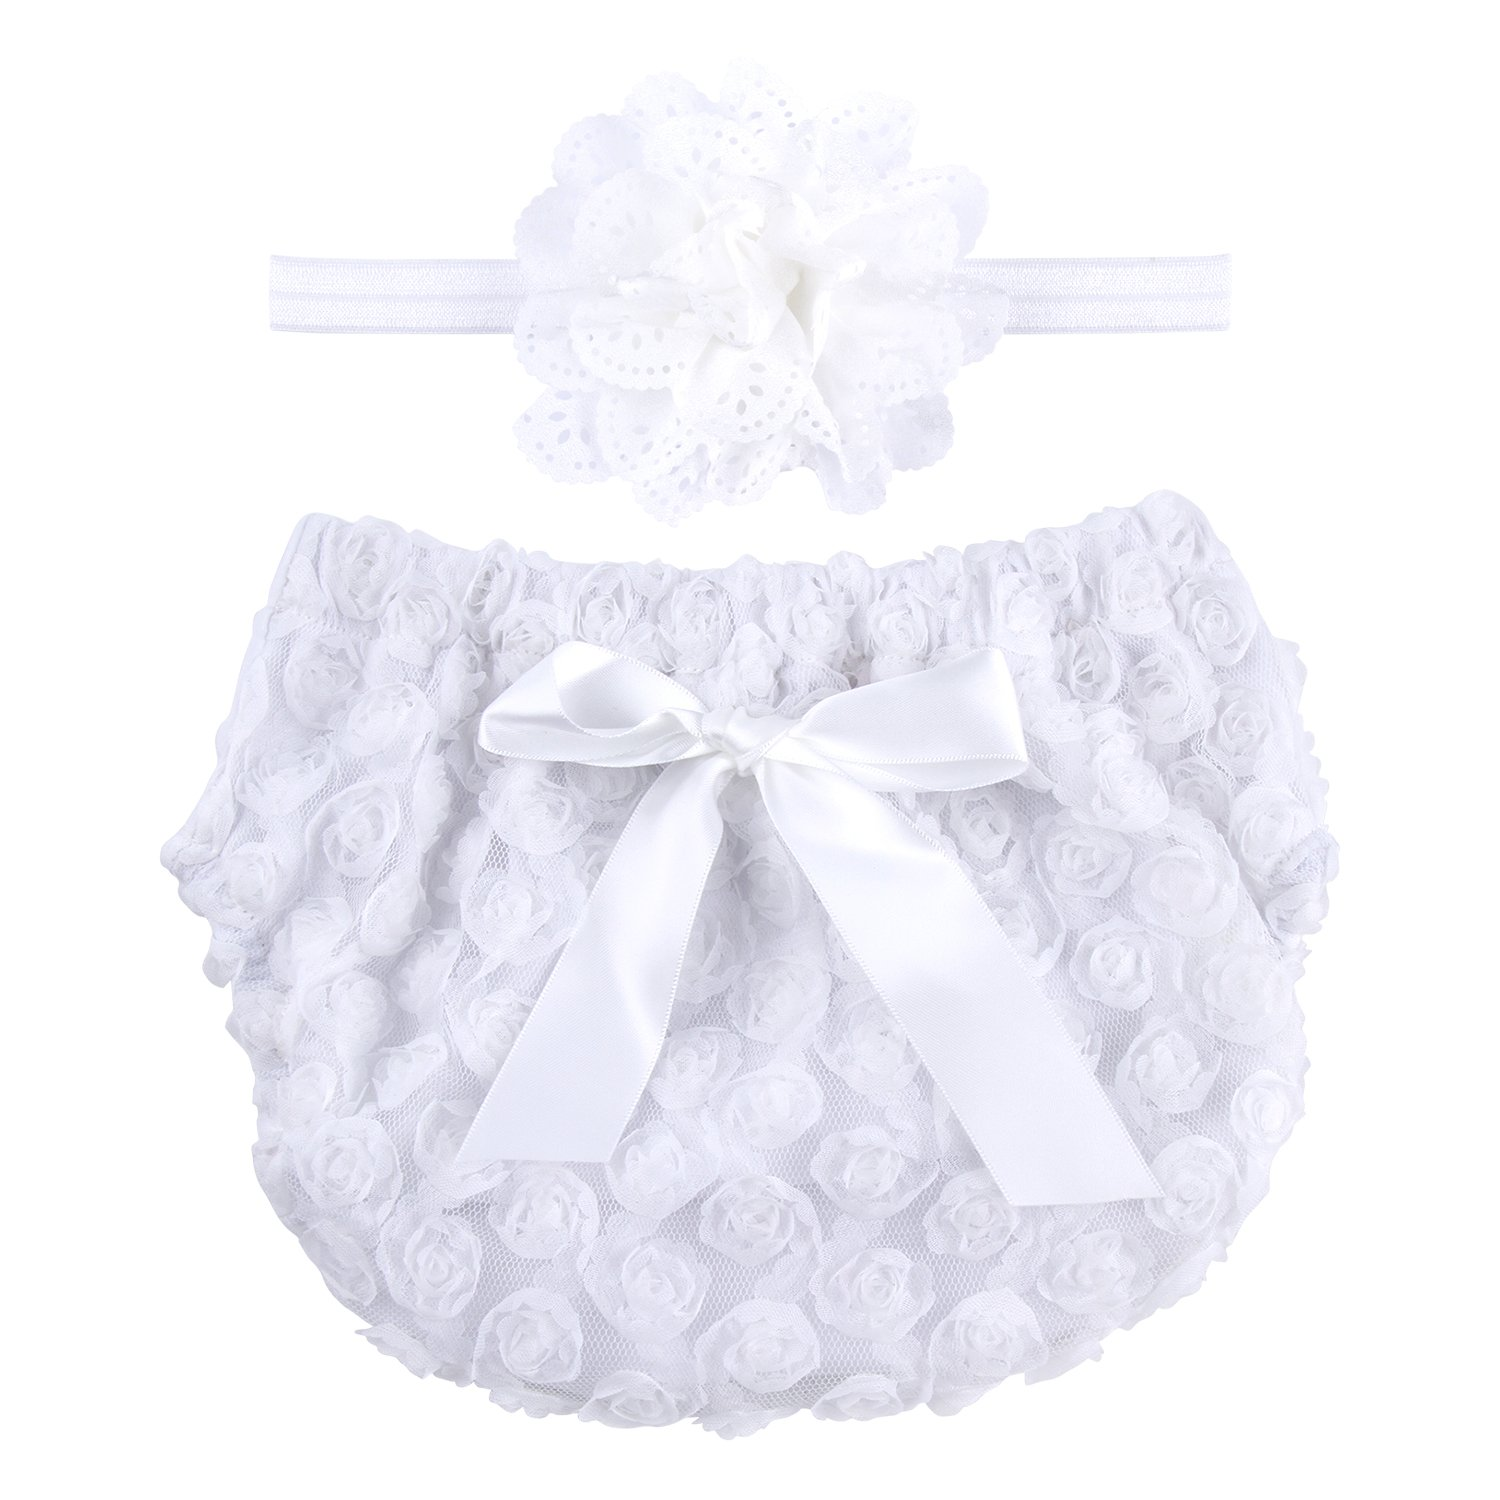 ICObuty Rose Ruffle Bloomer Diaper Cover for Baby Girls Toddlers (13-24m Large, White)